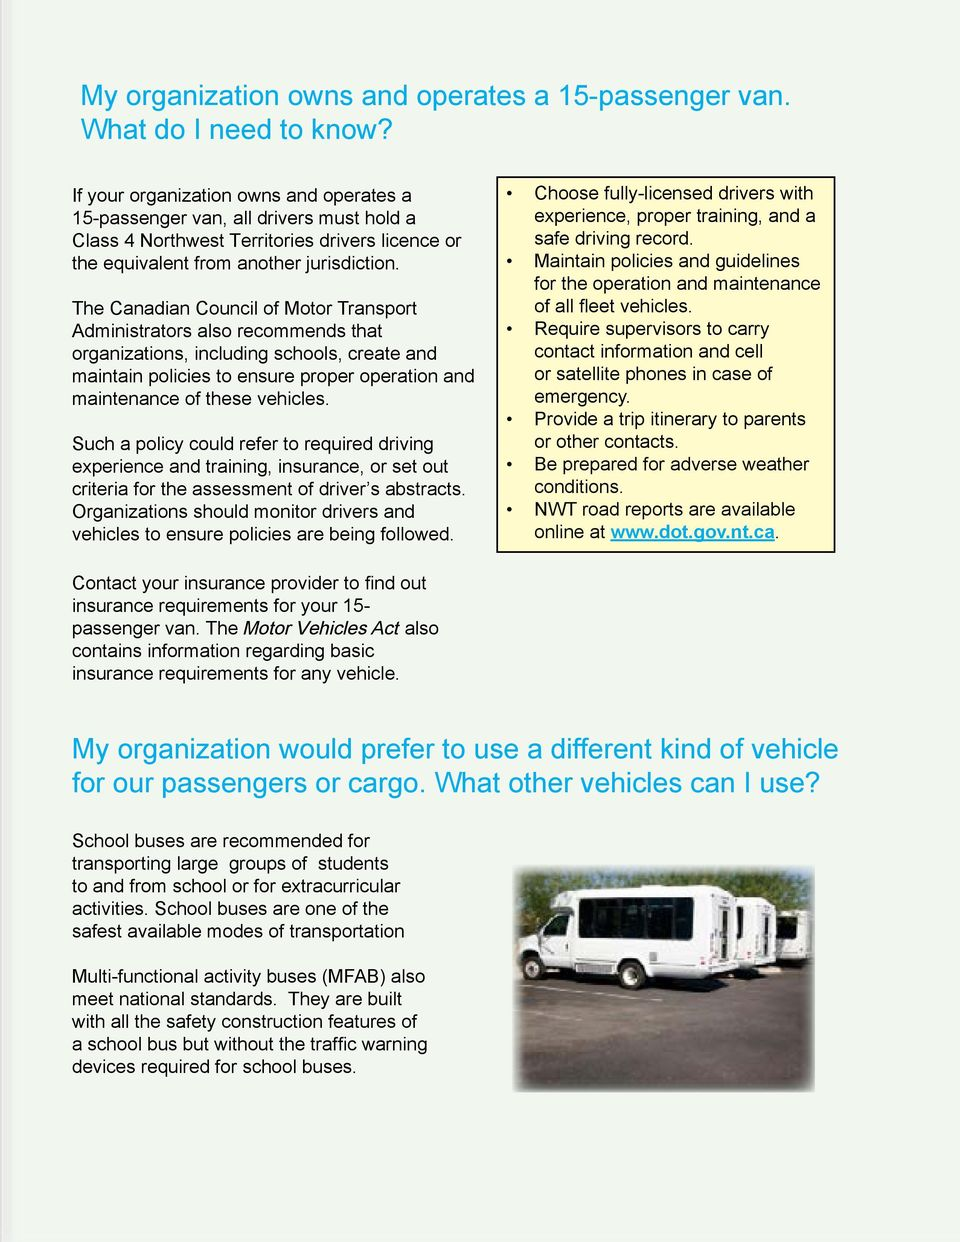 The Canadian Council of Motor Transport Administrators also recommends that organizations, including schools, create and maintain policies to ensure proper operation and maintenance of these vehicles.